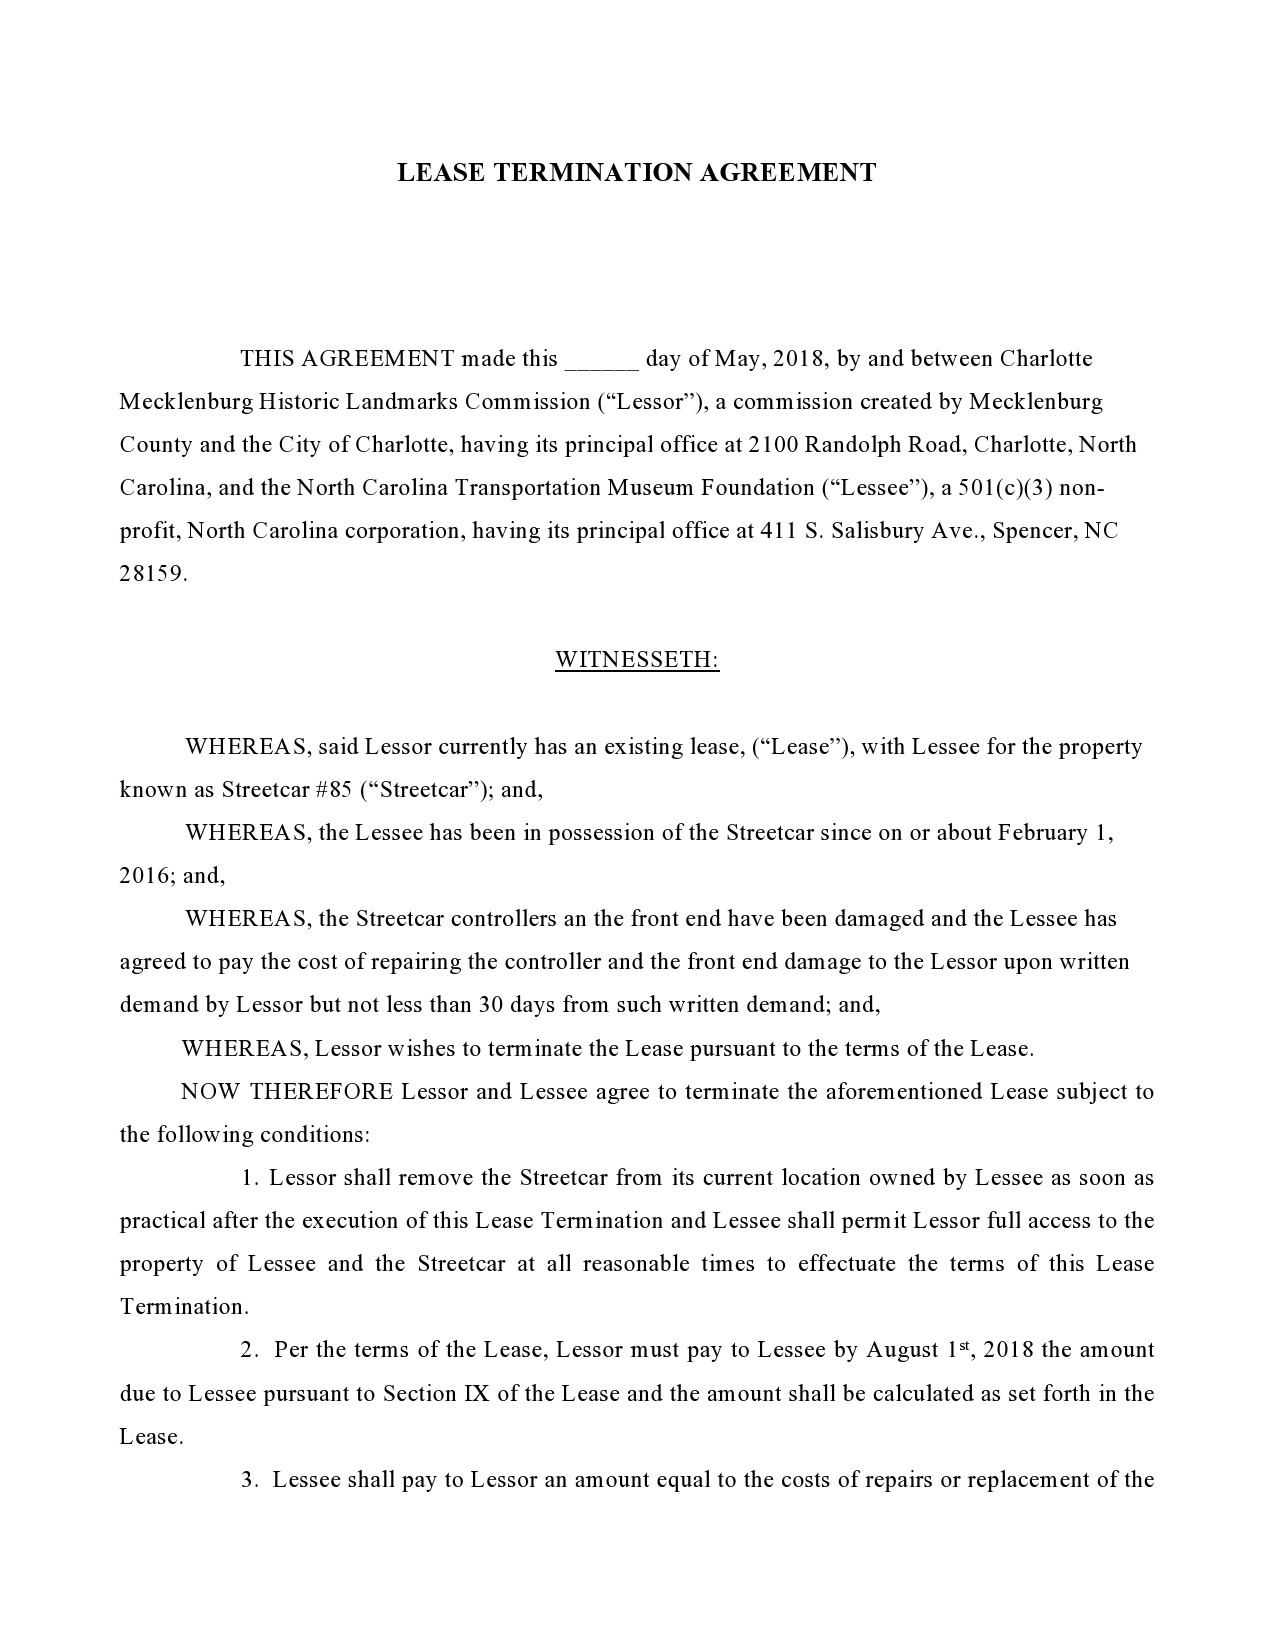 Free lease termination agreement 09